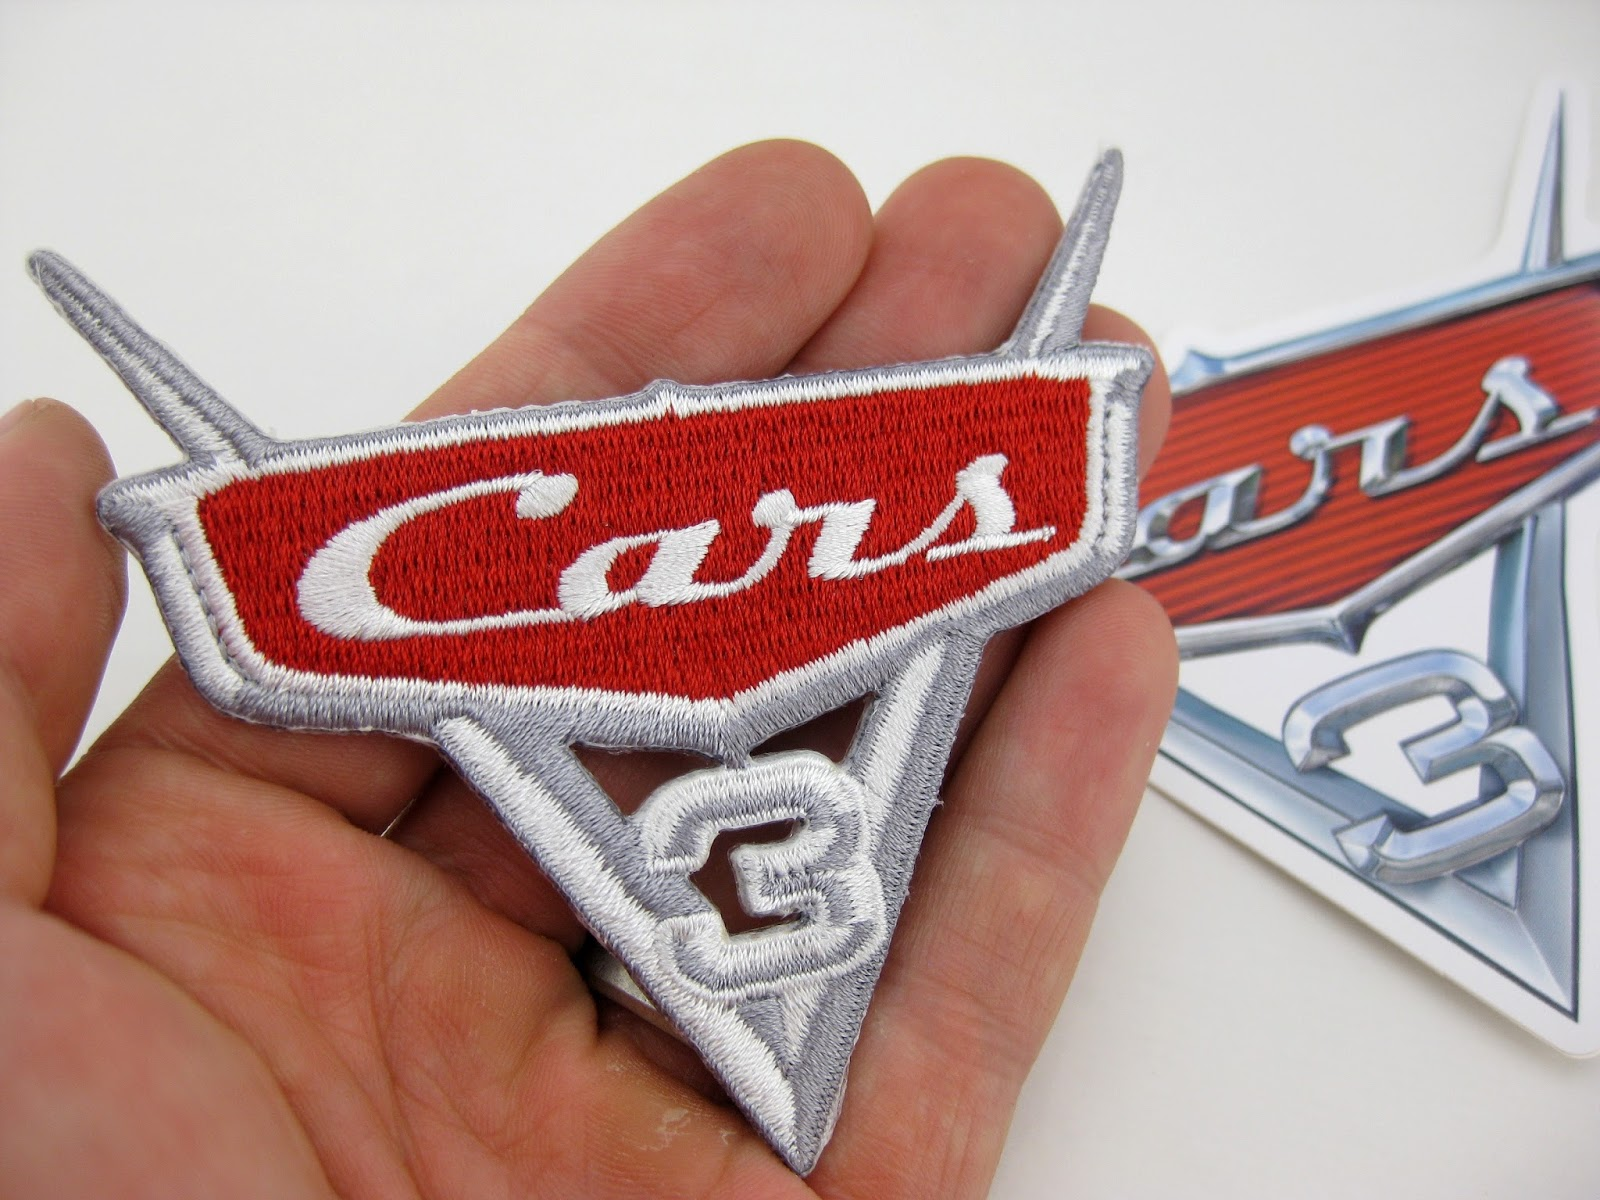 pixar studio store cars 3 sticker patch